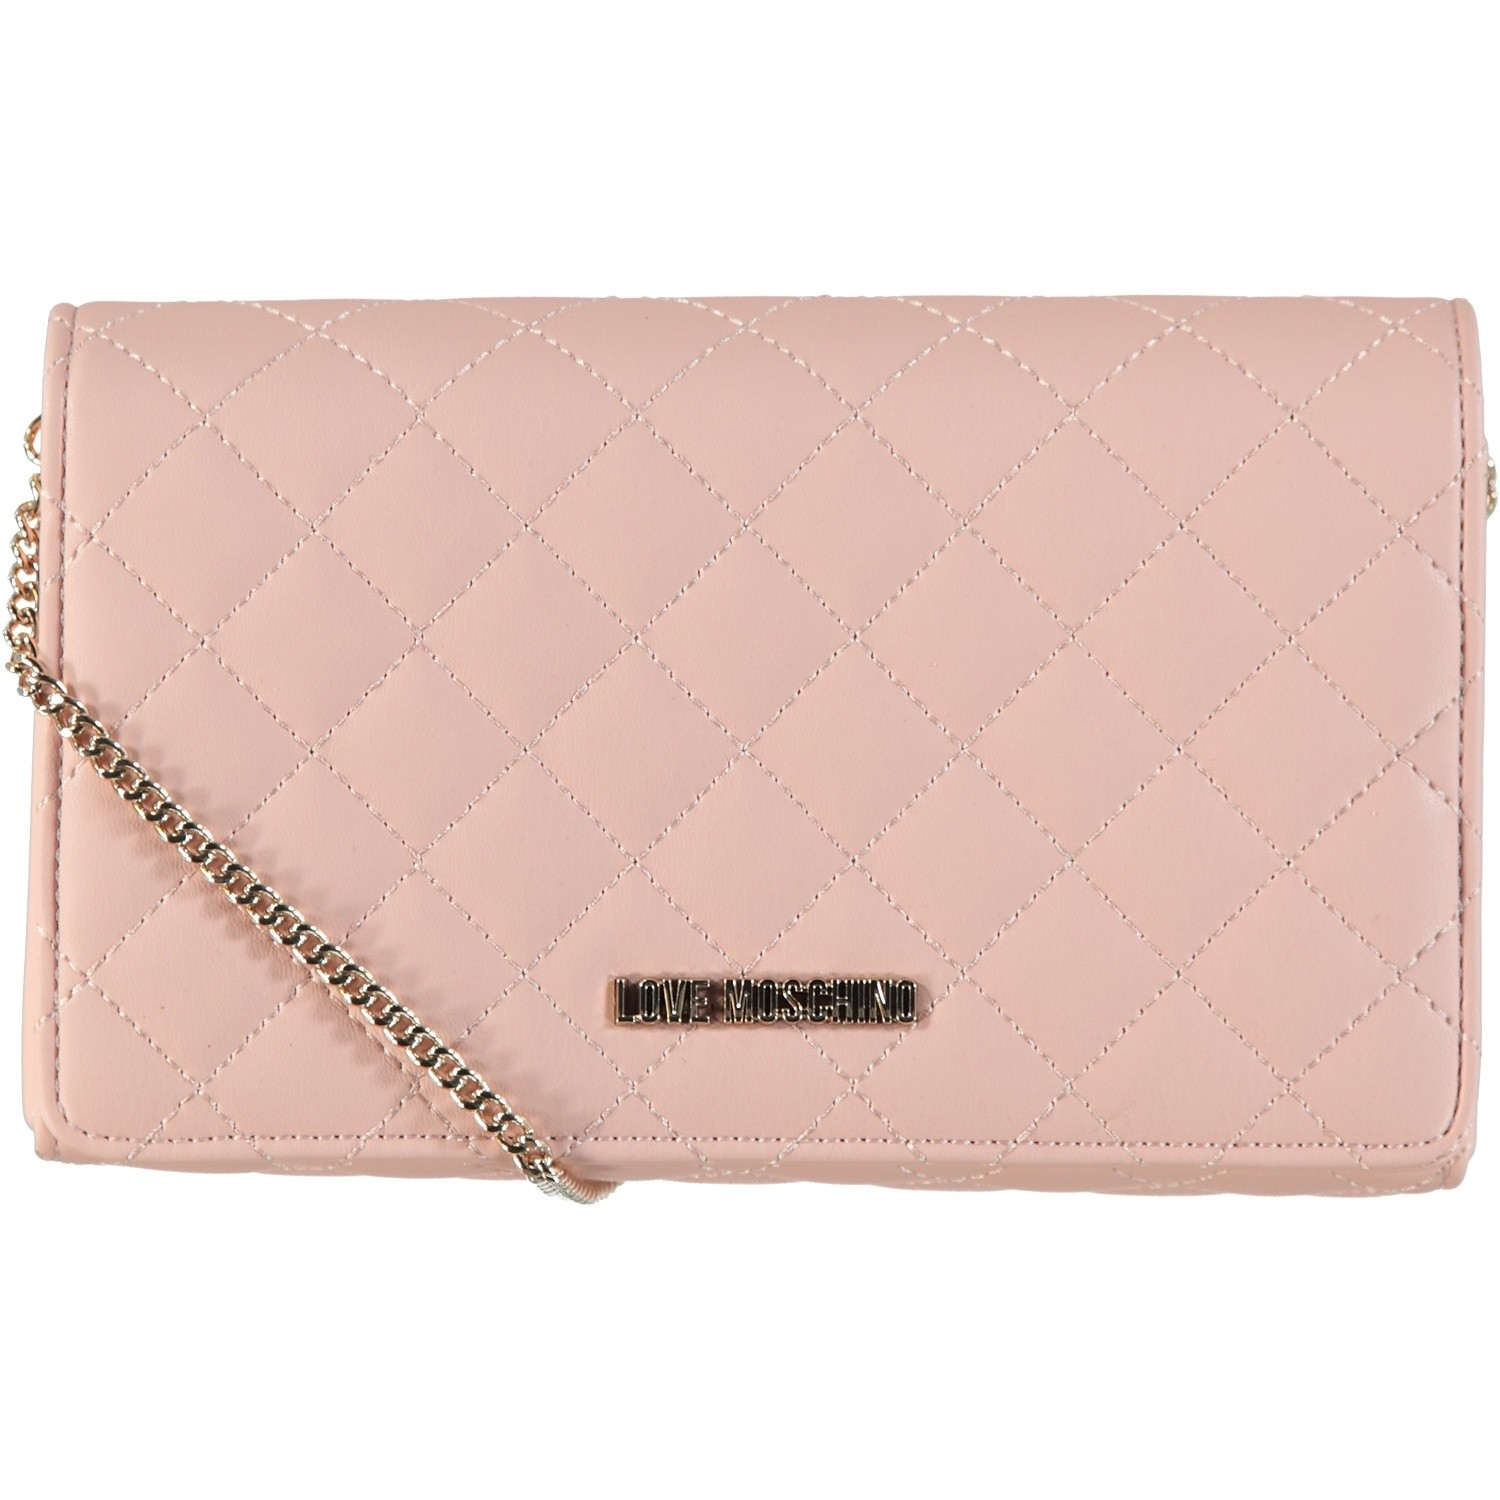 Picture of Moschino JC4095 mens bag light pink